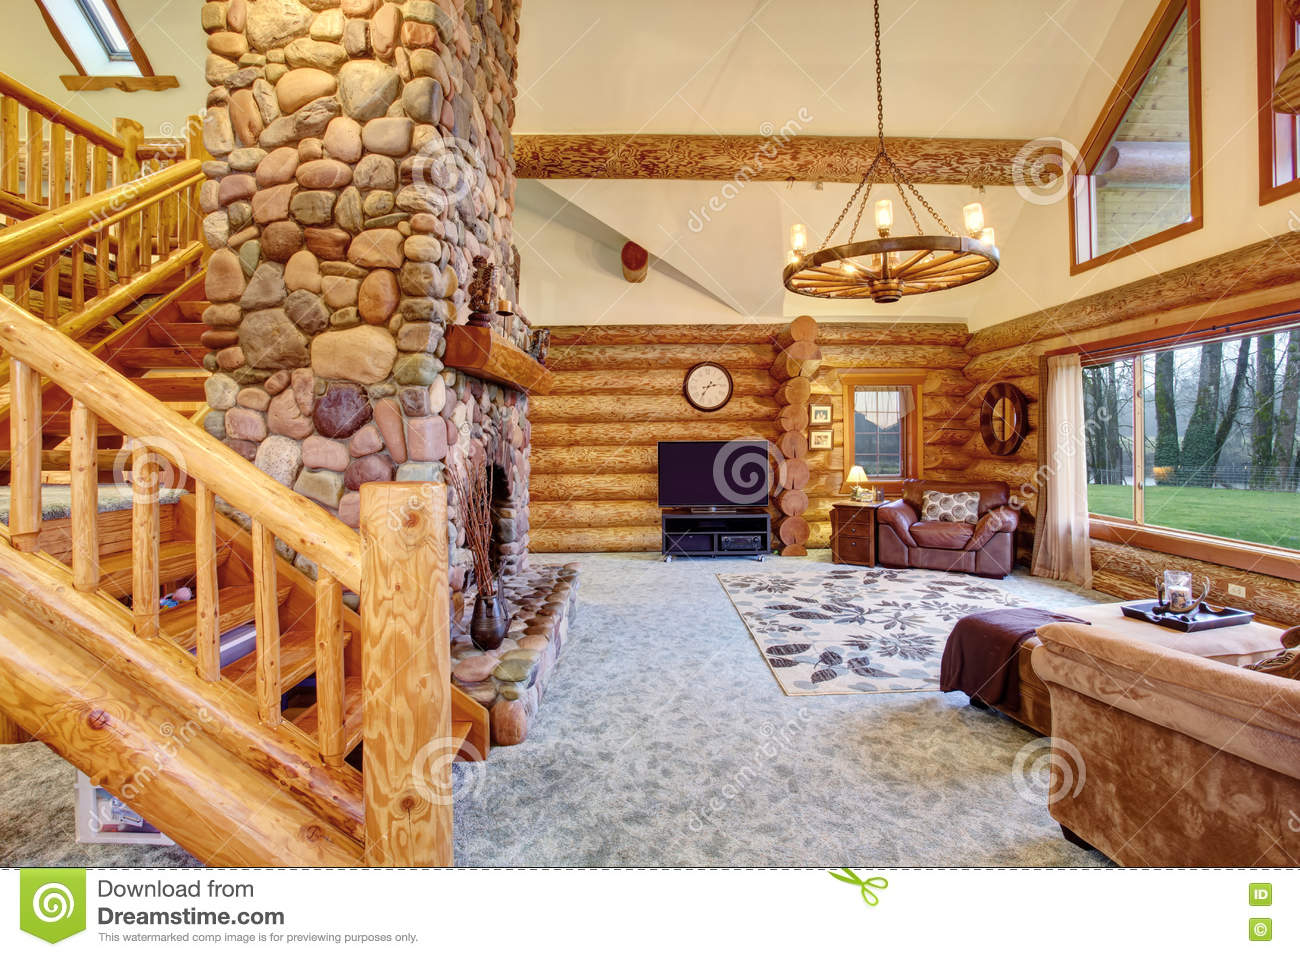 Wonderful image of Royalty Free Stock Image Kitchen Room Log Cabin House Bright Rocky  with #7F3E1D color and 1300x957 pixels